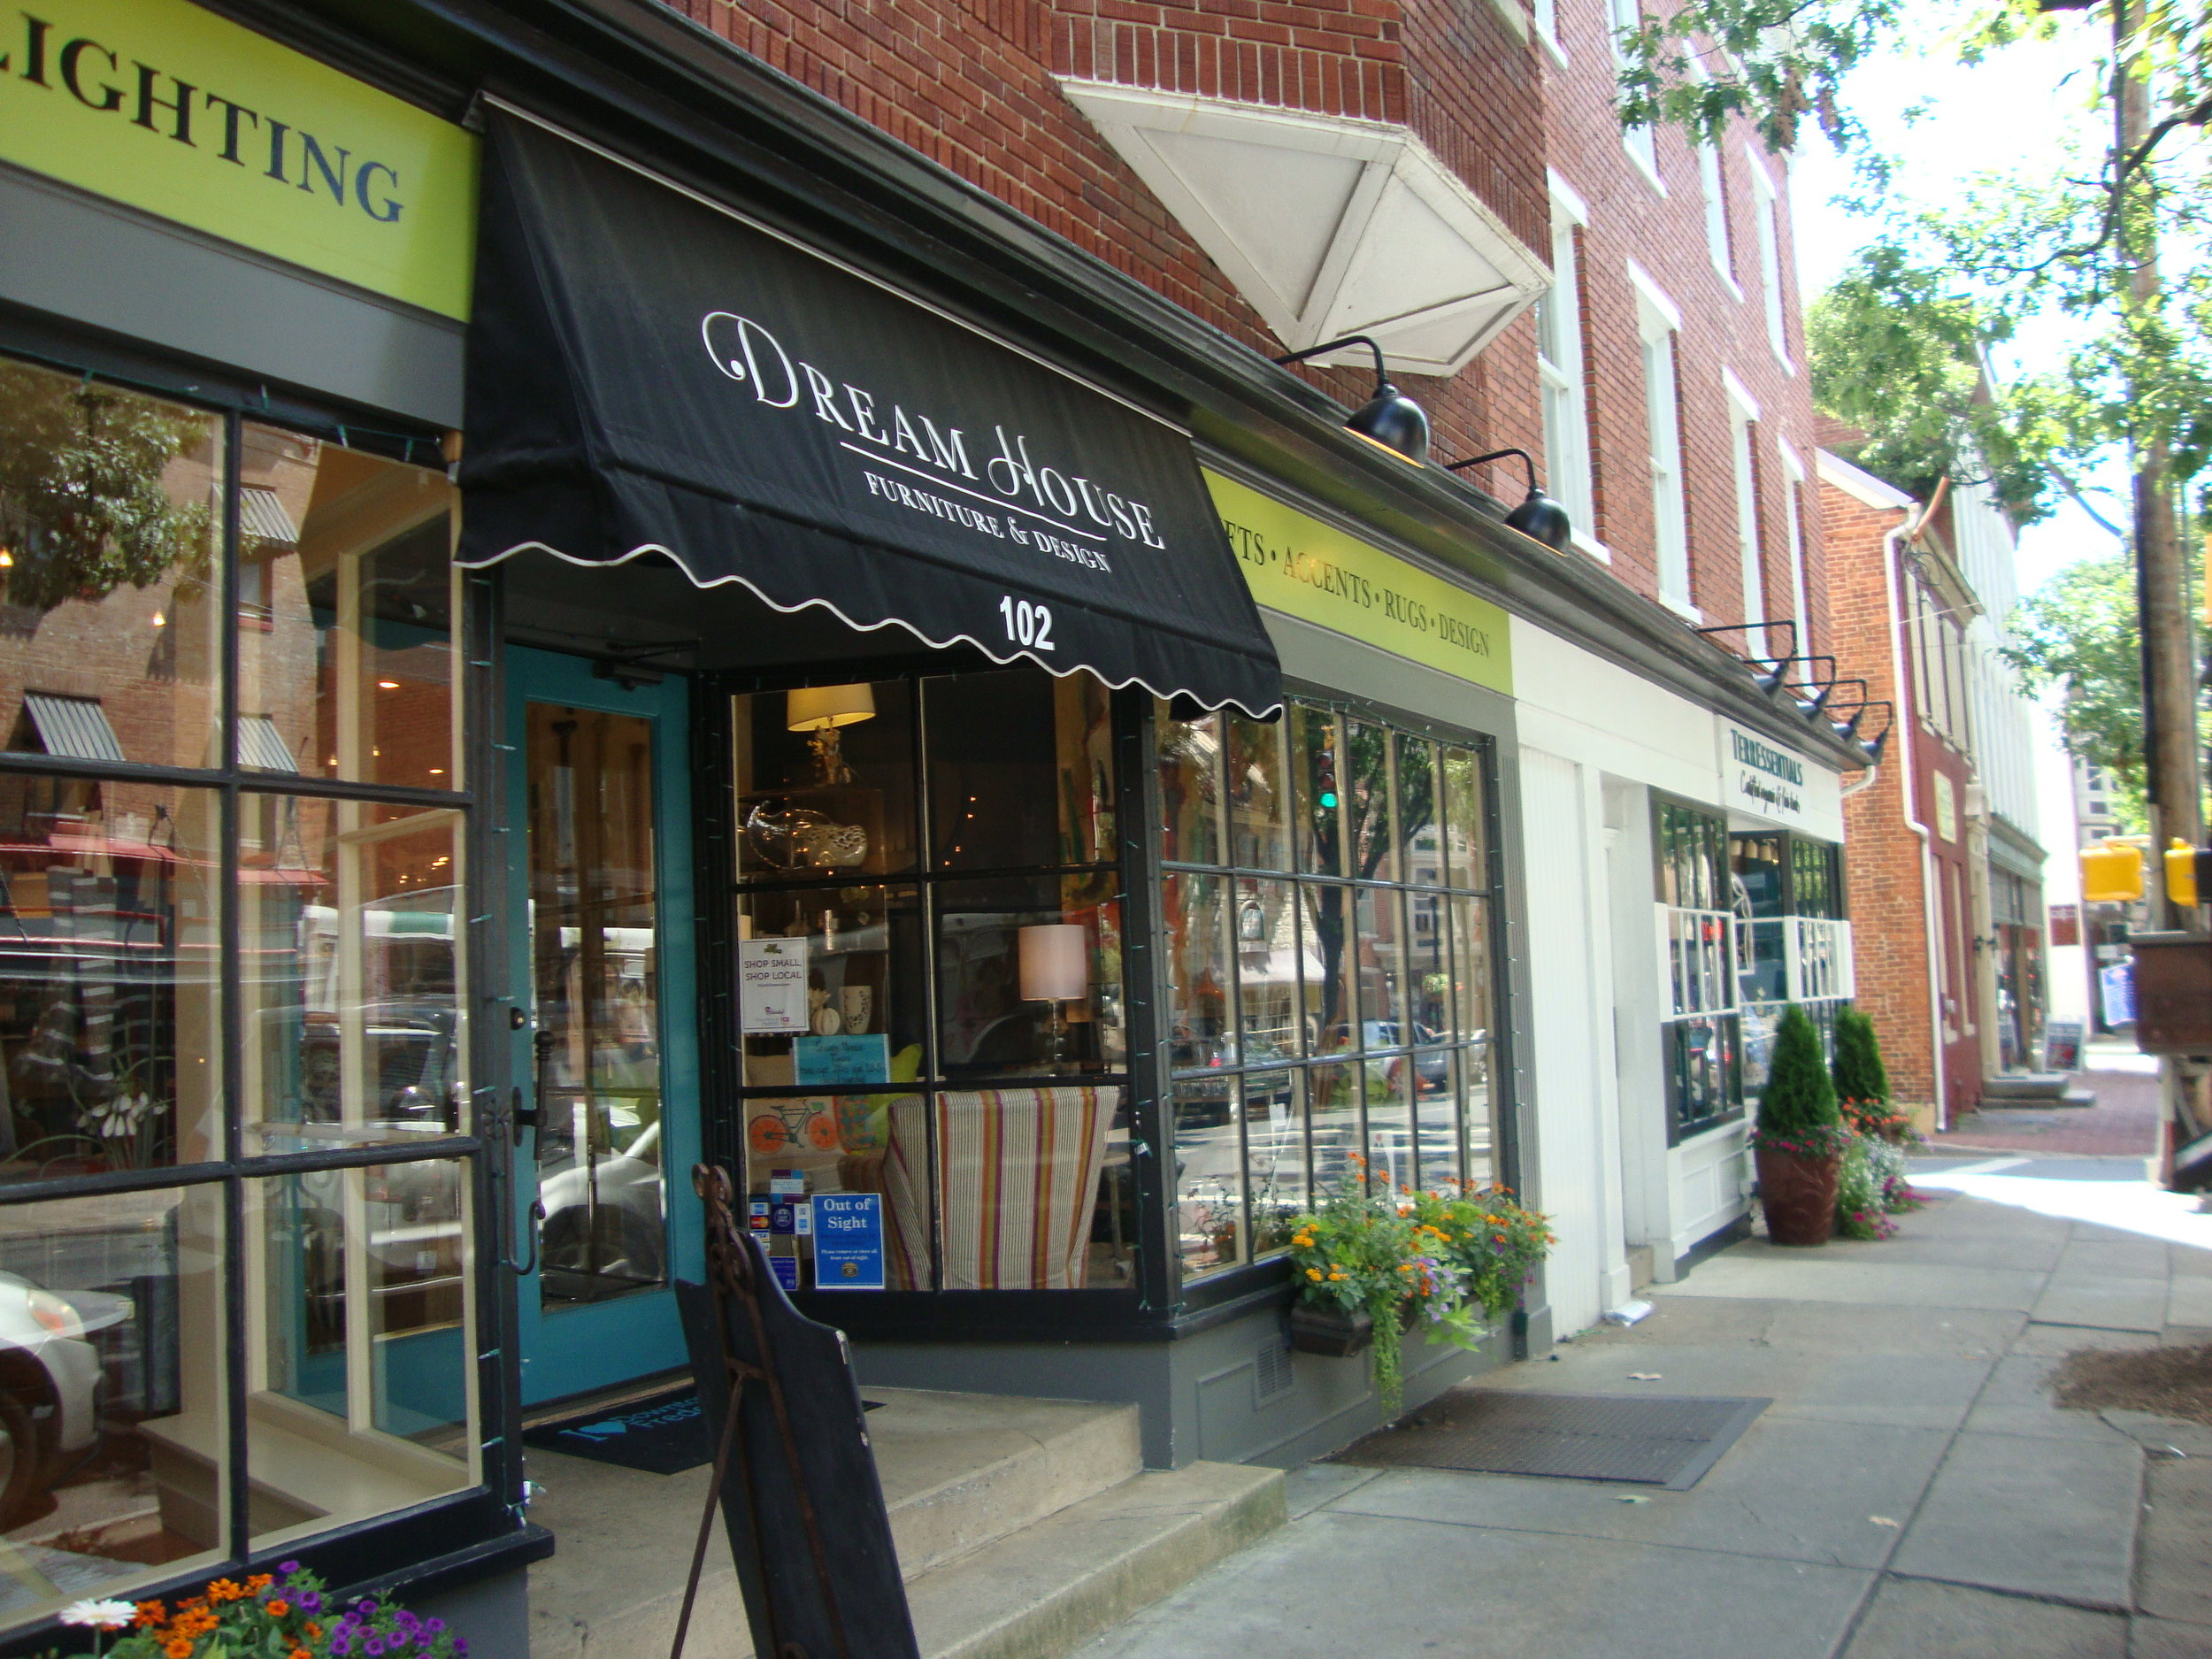 A business recipient of Community Legacy Grant funds awarded to The City of Frederick